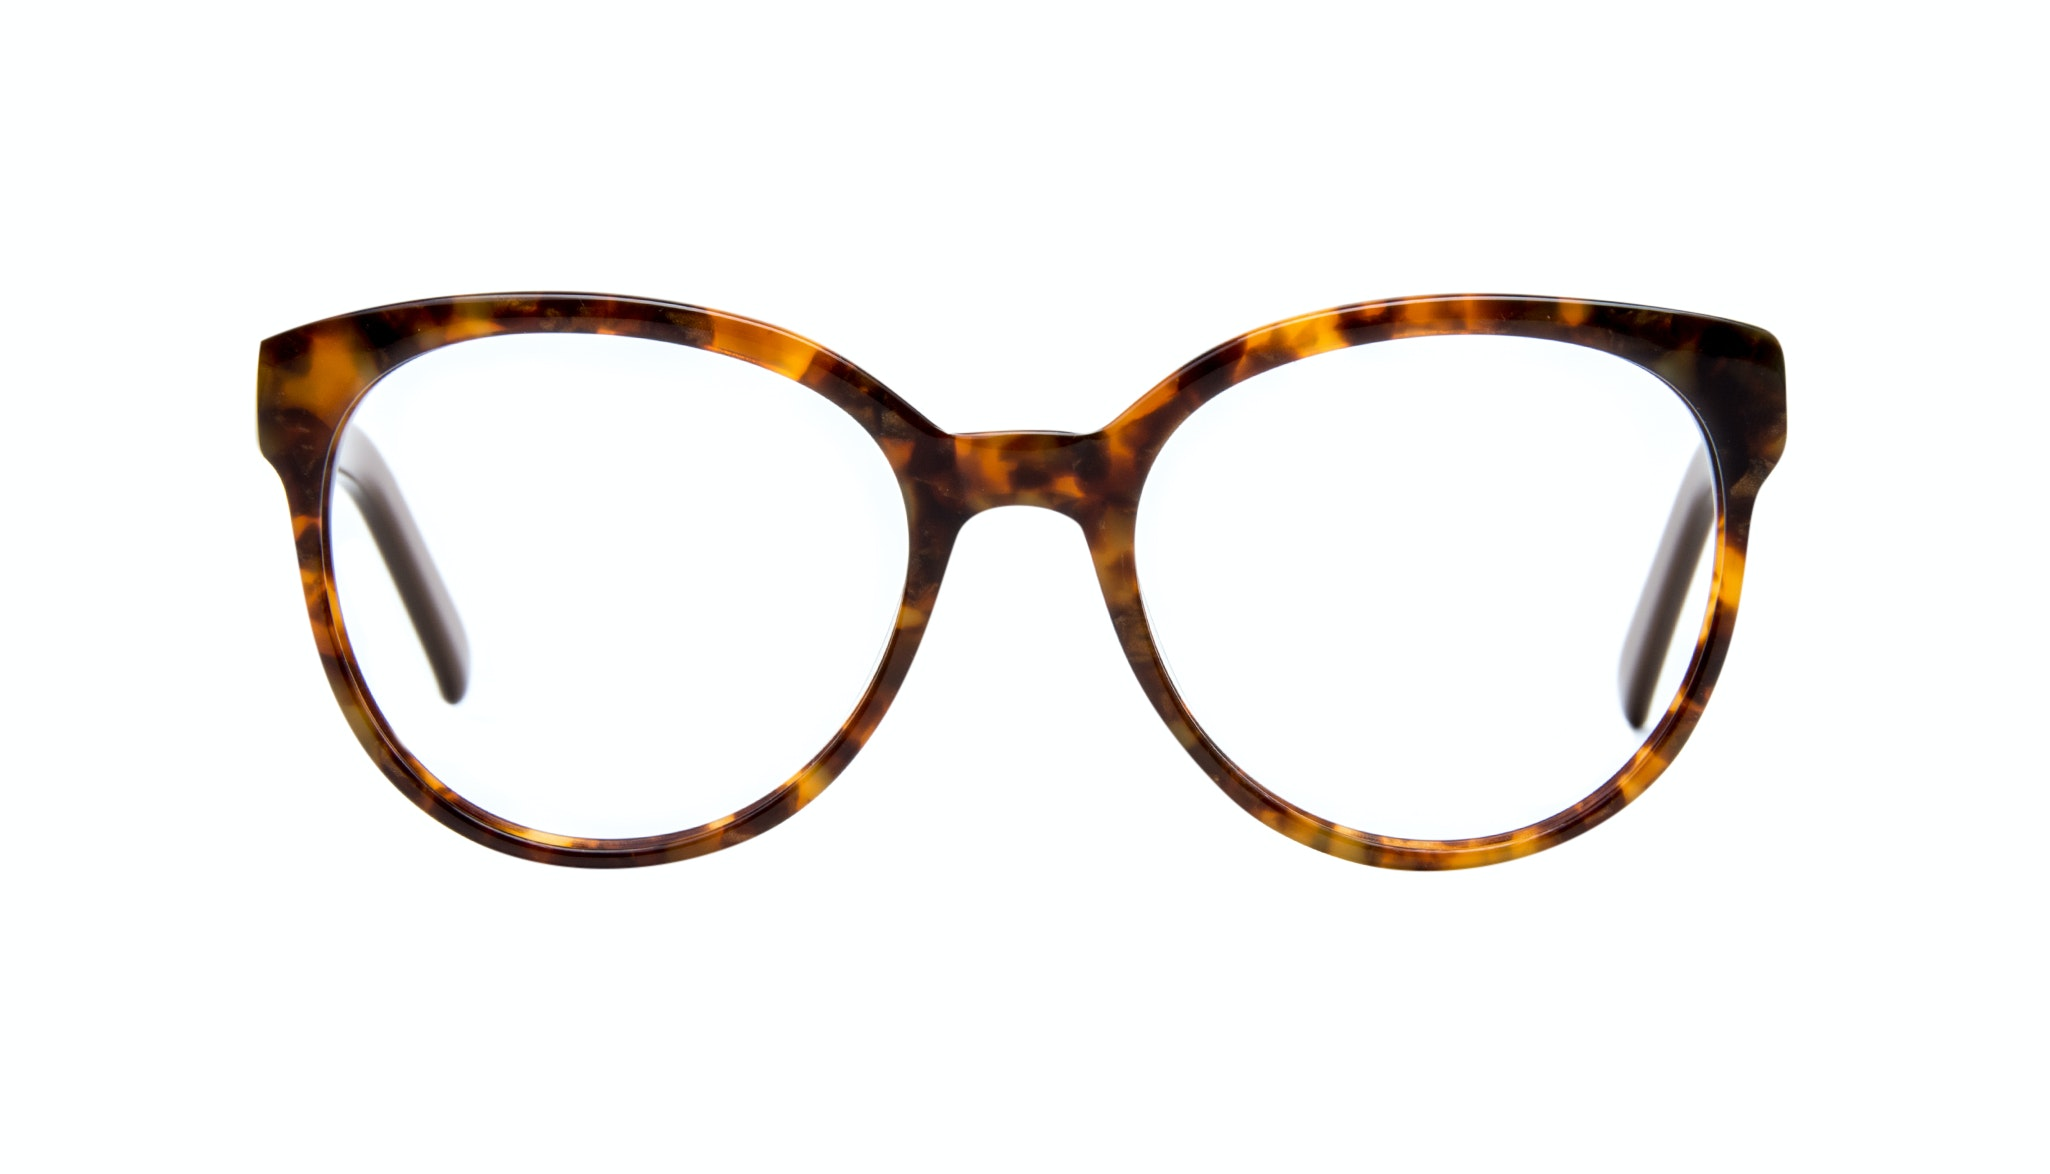 Affordable Fashion Glasses Cat Eye Round Eyeglasses Women Eclipse Tort Gold Front